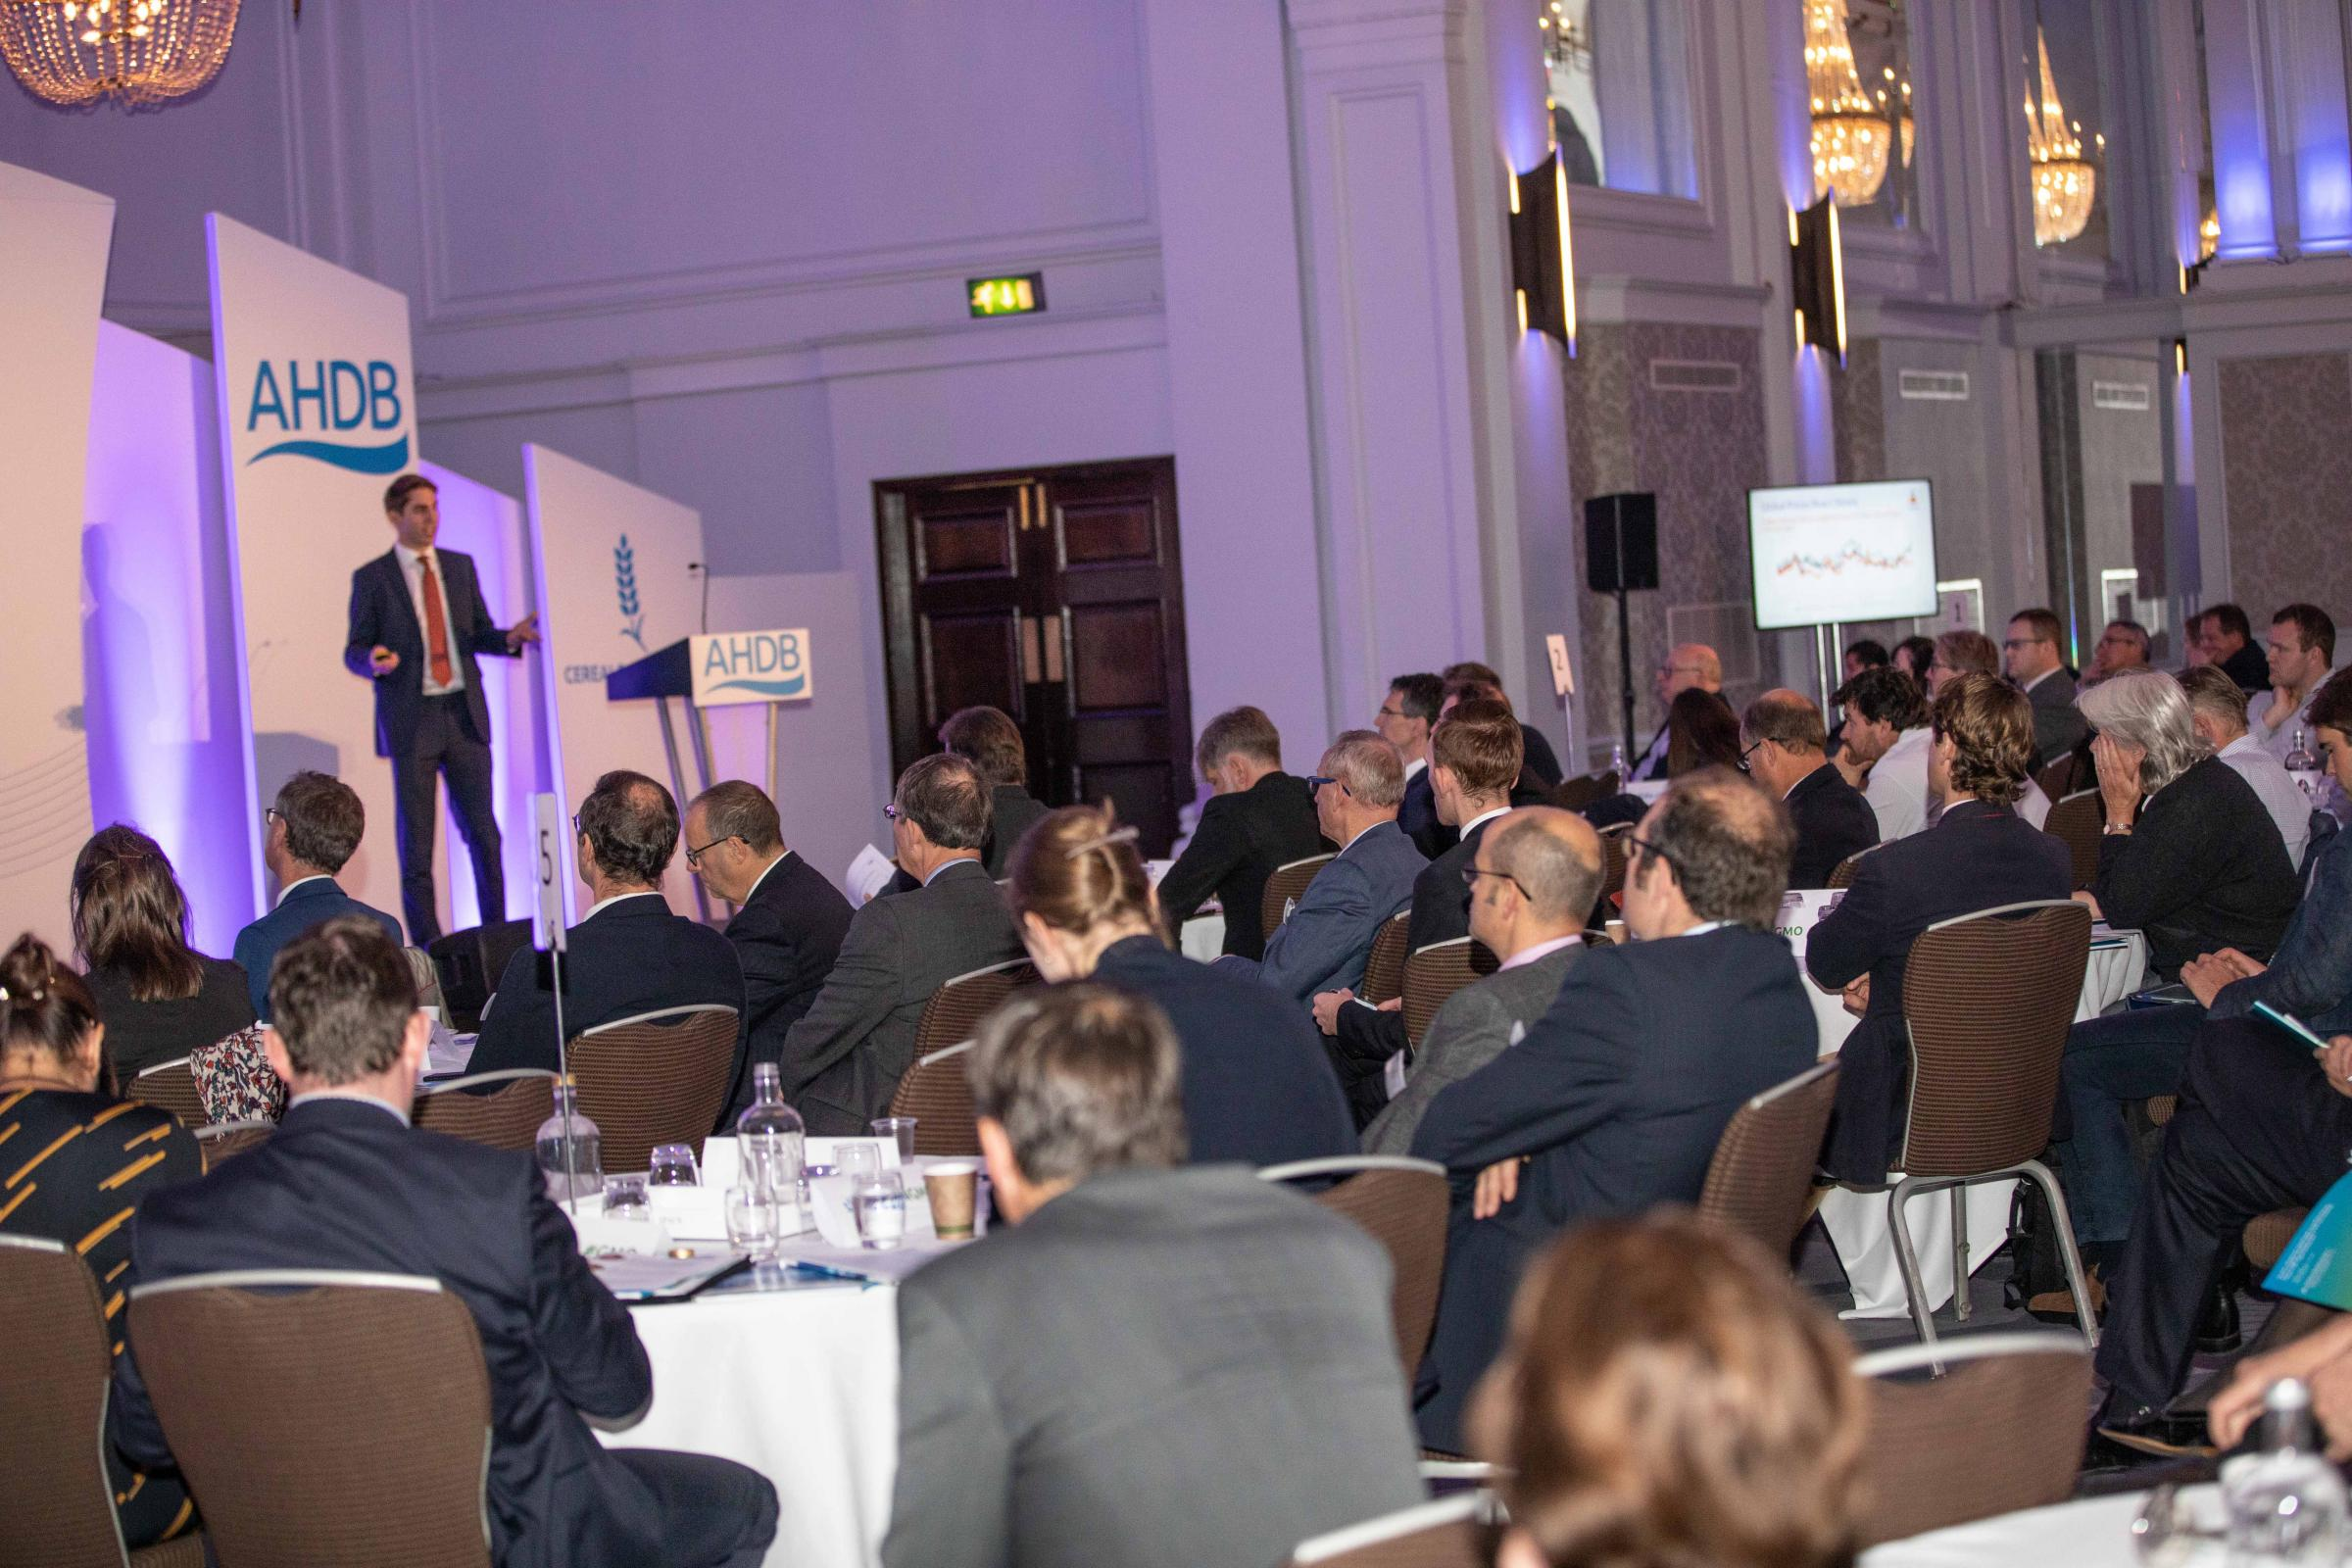 A busy grain and oilseed conference held by AHDB heard of the challenges ahead for the industry